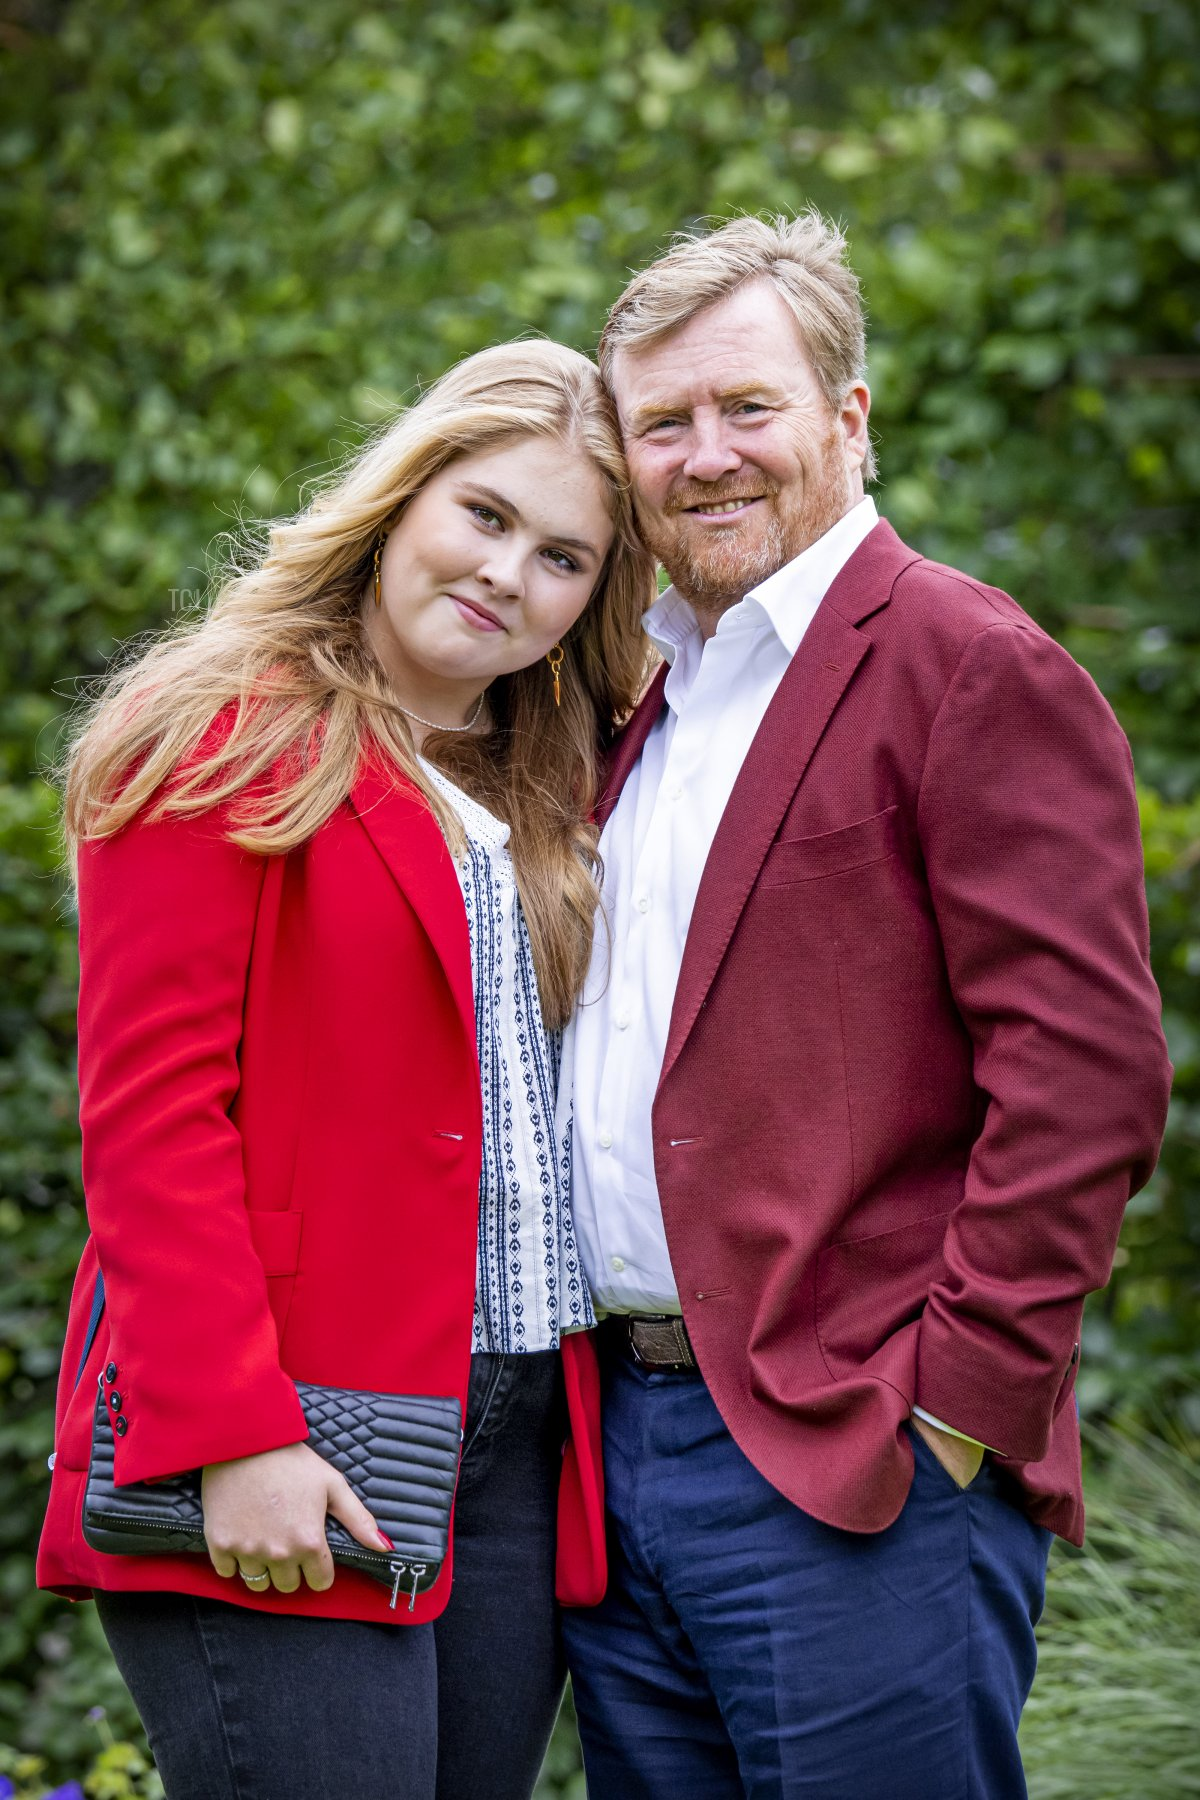 Princess Ariane of the Netherlands, Queen Maxima of the Netherlands, Princess Alexia of the Netherlands, King Willem-Alexander of the Netherlands and Princess Amalia of the Netherlands pose during the summer photo session at Huis ten Bosch Palace in The Hague, on July 16, 2021